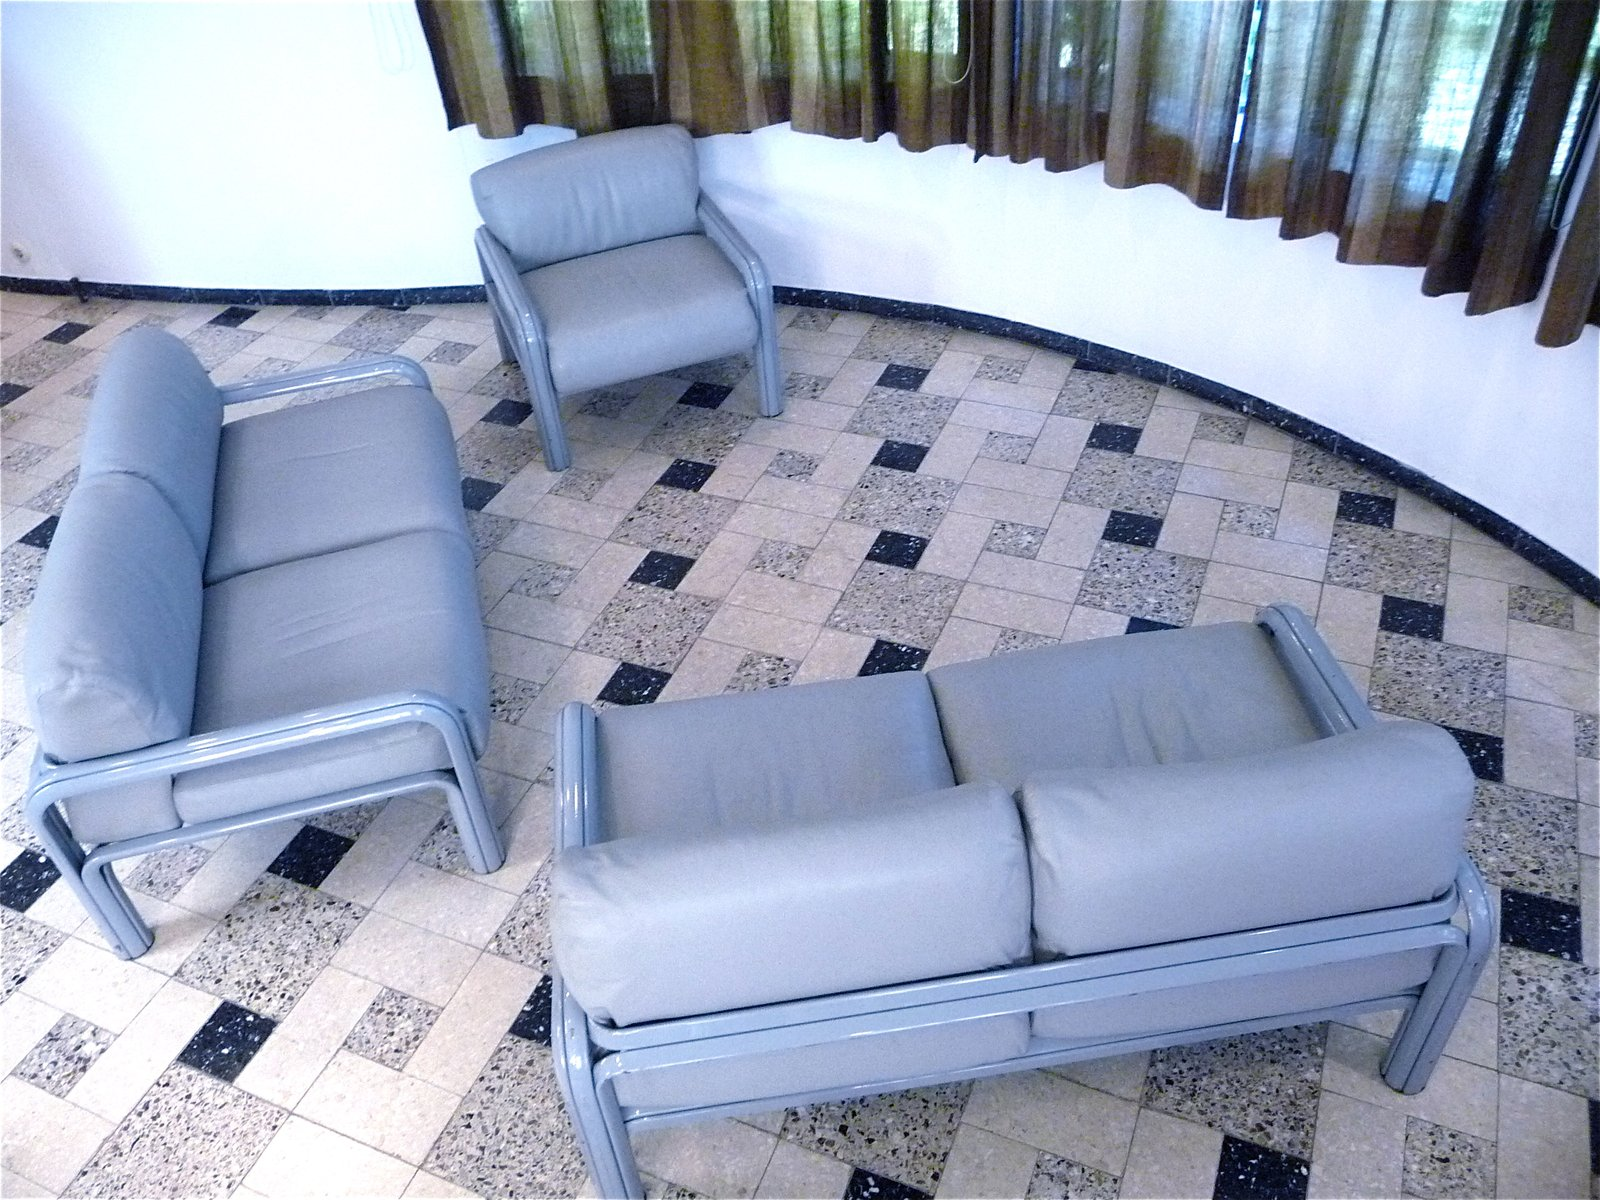 Launge Chaise Chair In Living Room